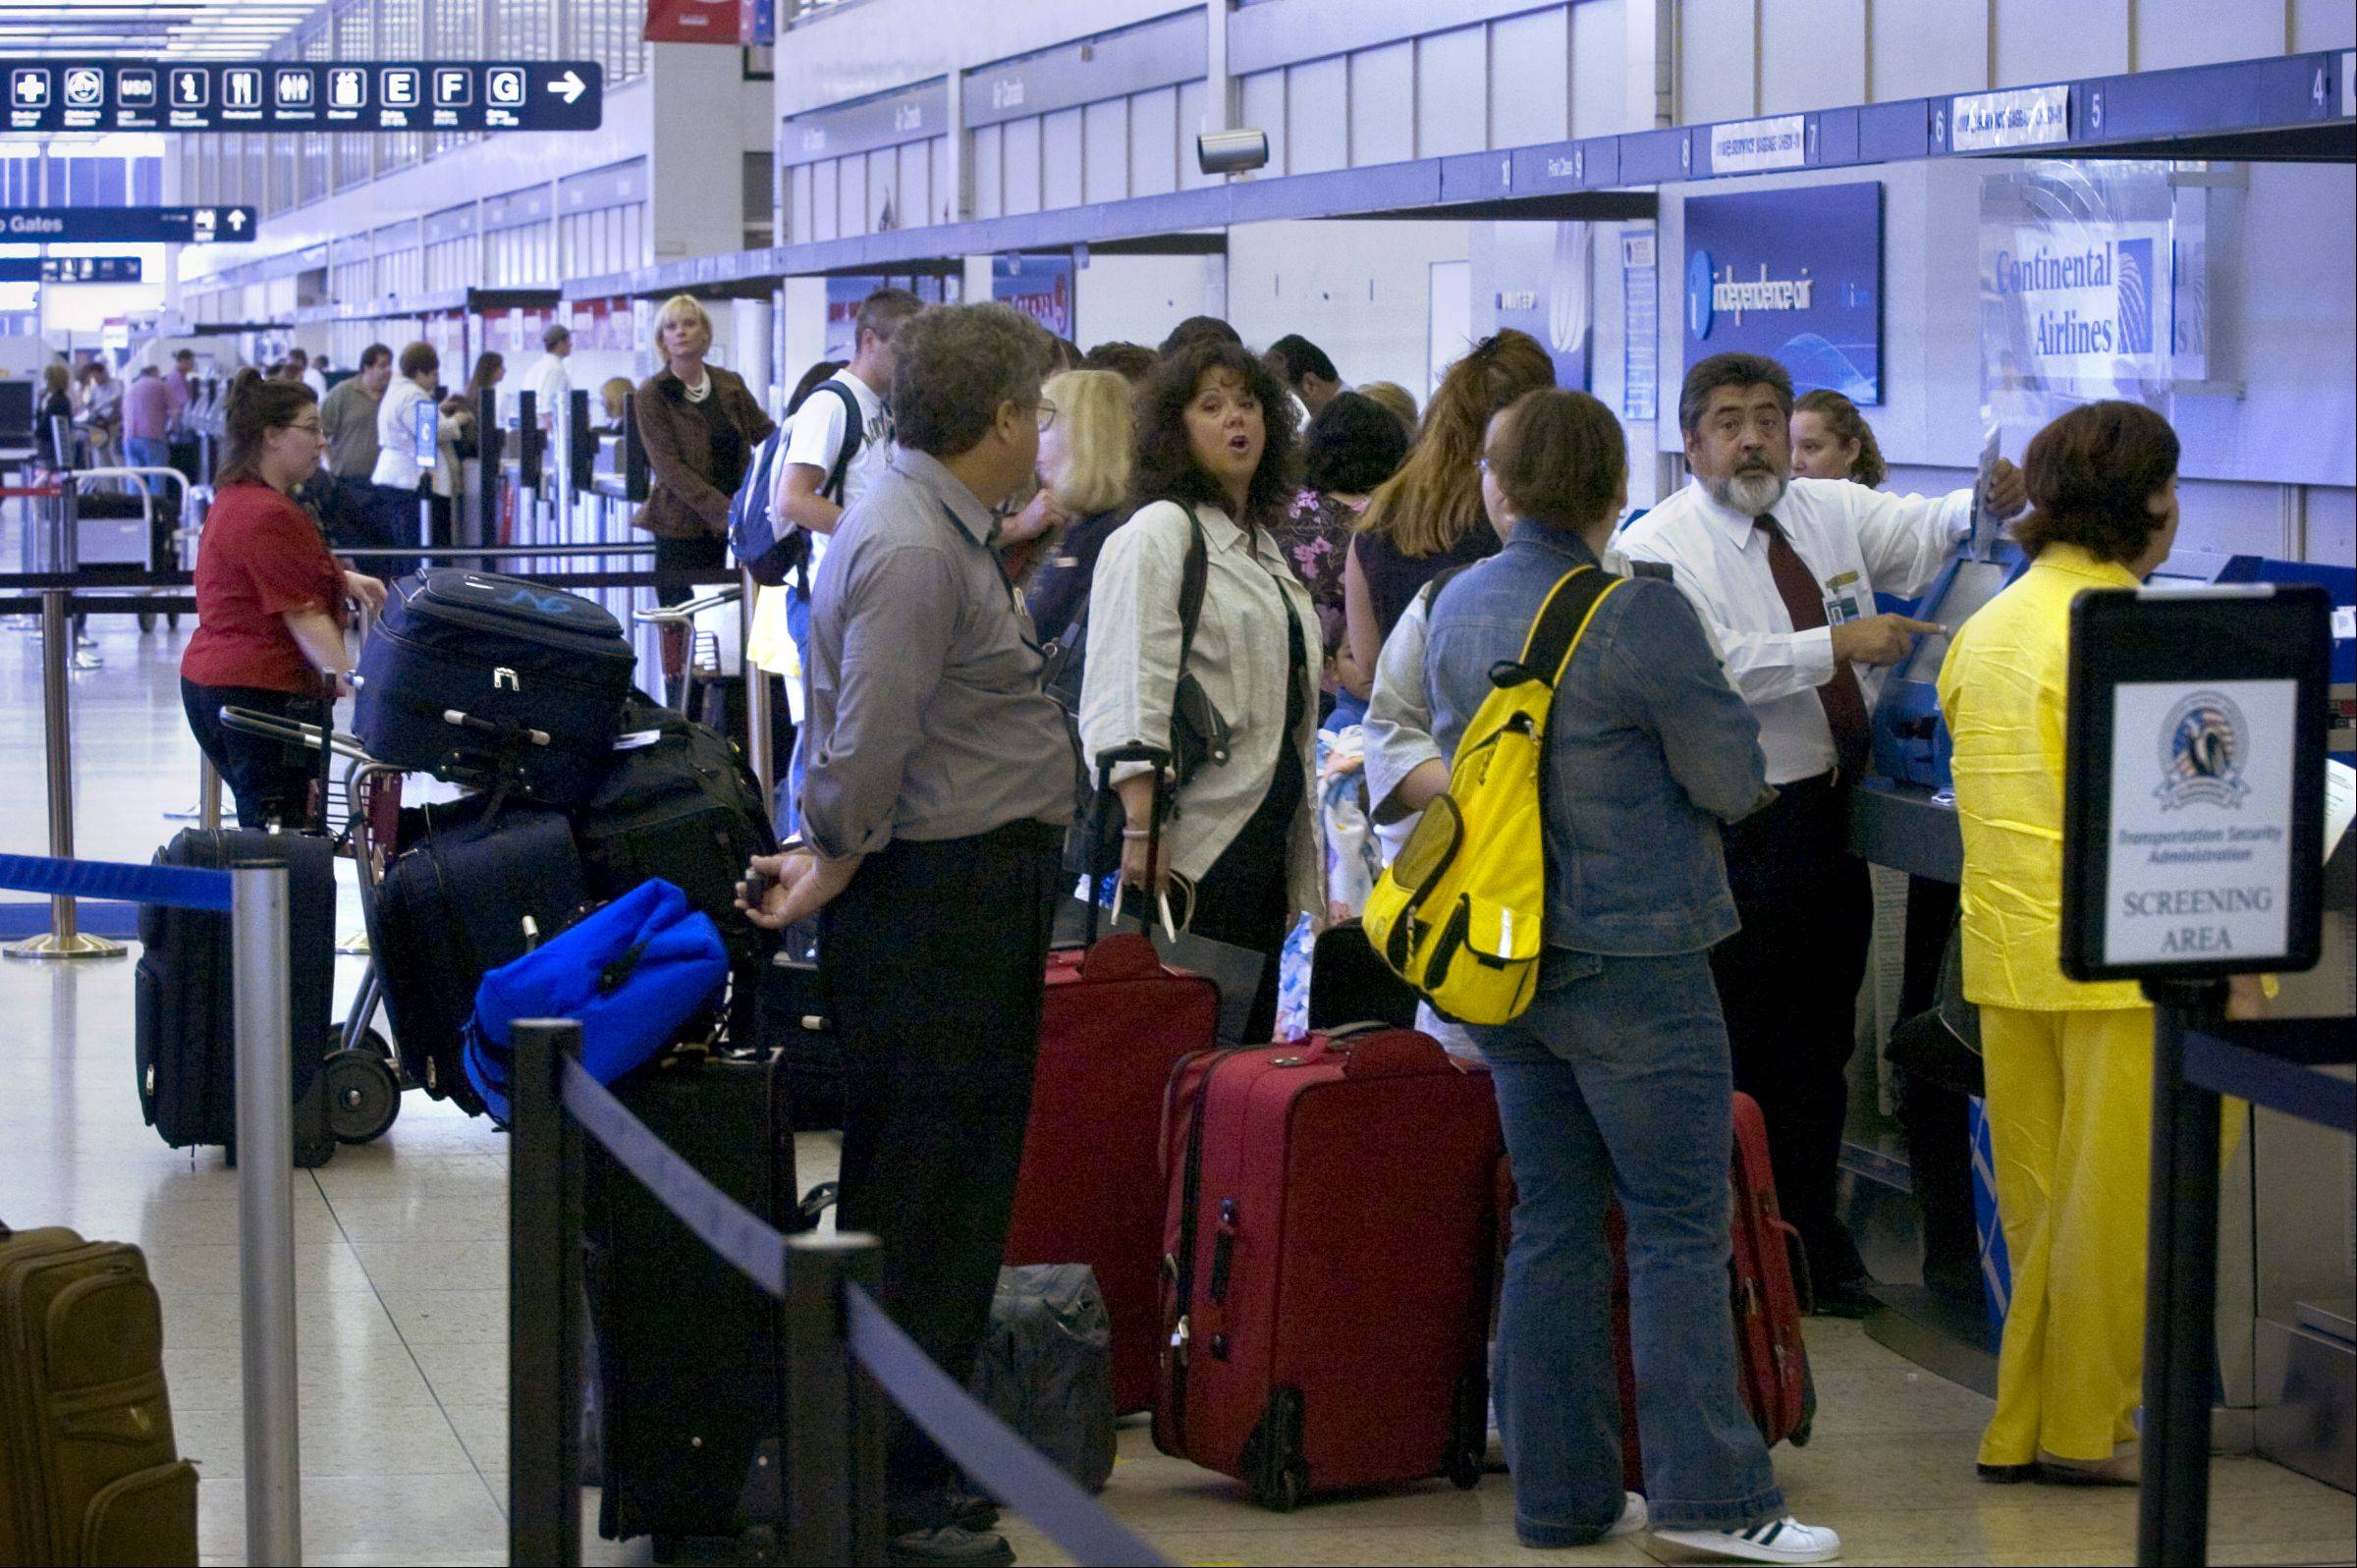 Things are going to get really busy at Chicago�s O�Hare International Airport this weekend. The city�s Department of Aviation says that the 269,000 passengers expected at O�Hare on Friday will make it the busiest day of the Memorial Day weekend.